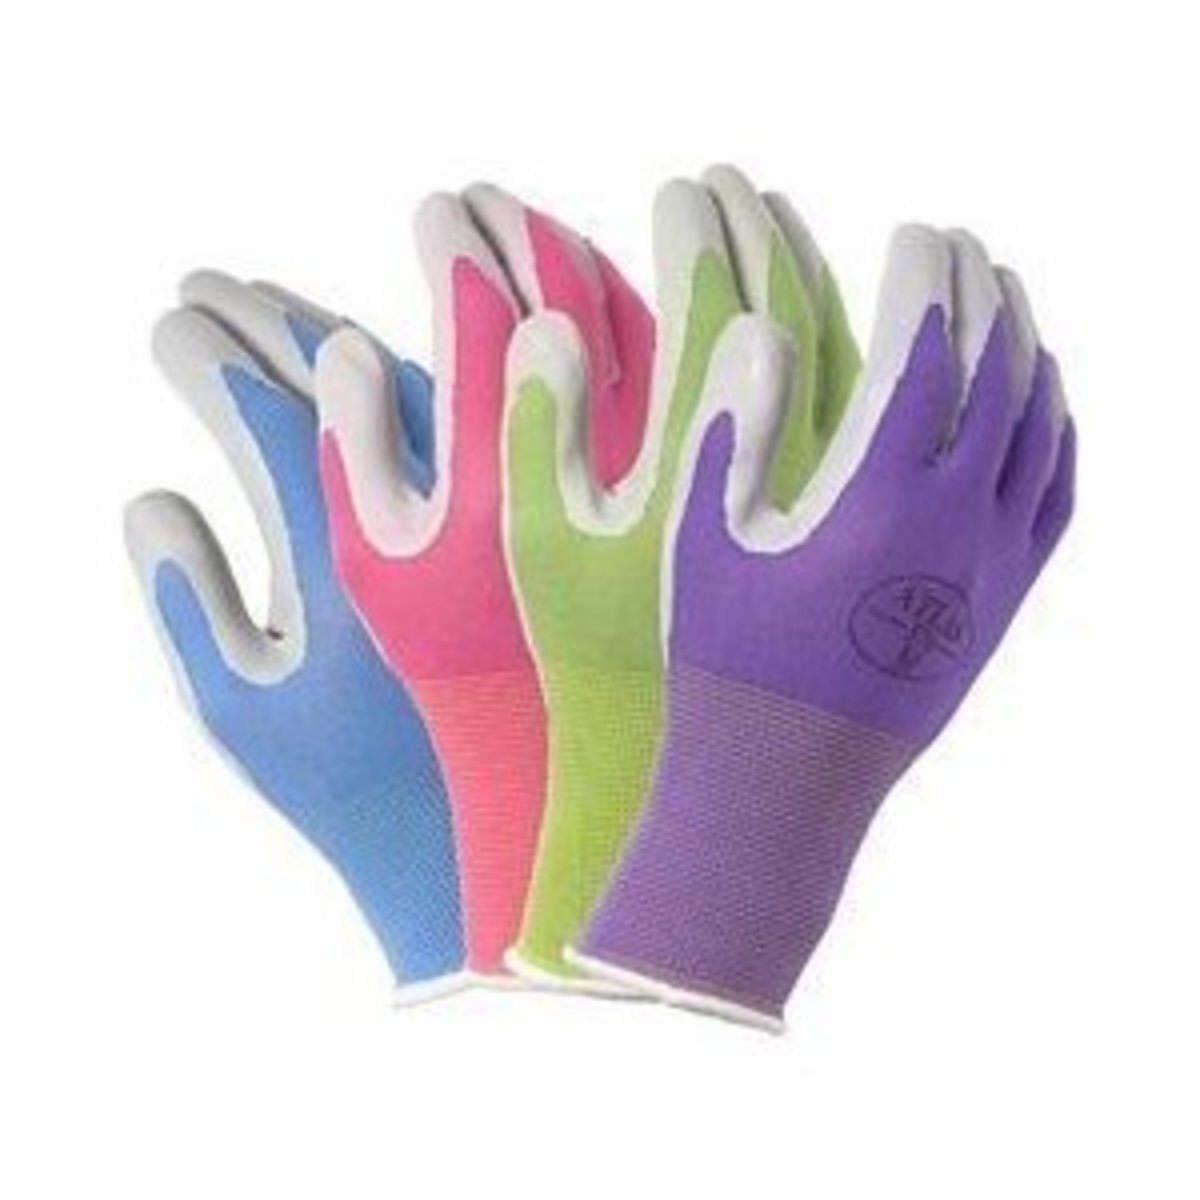 4 Pack Atlas Glove NT370 Atlas Nitrile Garden Gloves   Large (Assorted  Colors)